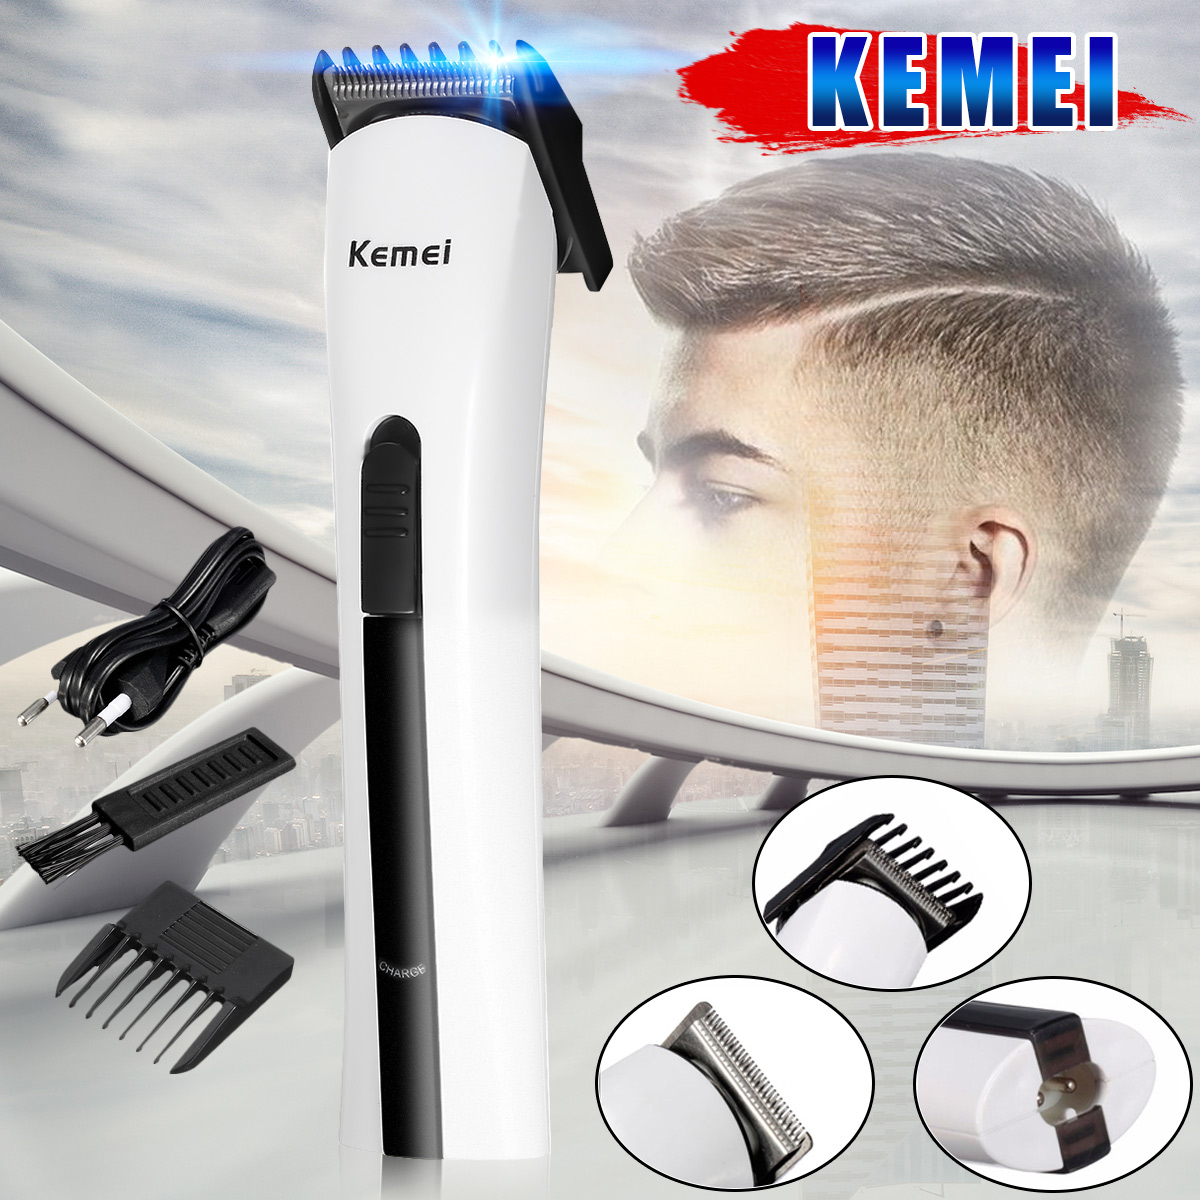 Kemei KM-2516 Rechargeable Hair Trimmer Men Electric Shaver Razor Beard Hair Clipper Cutting Trimmer Grooming все цены